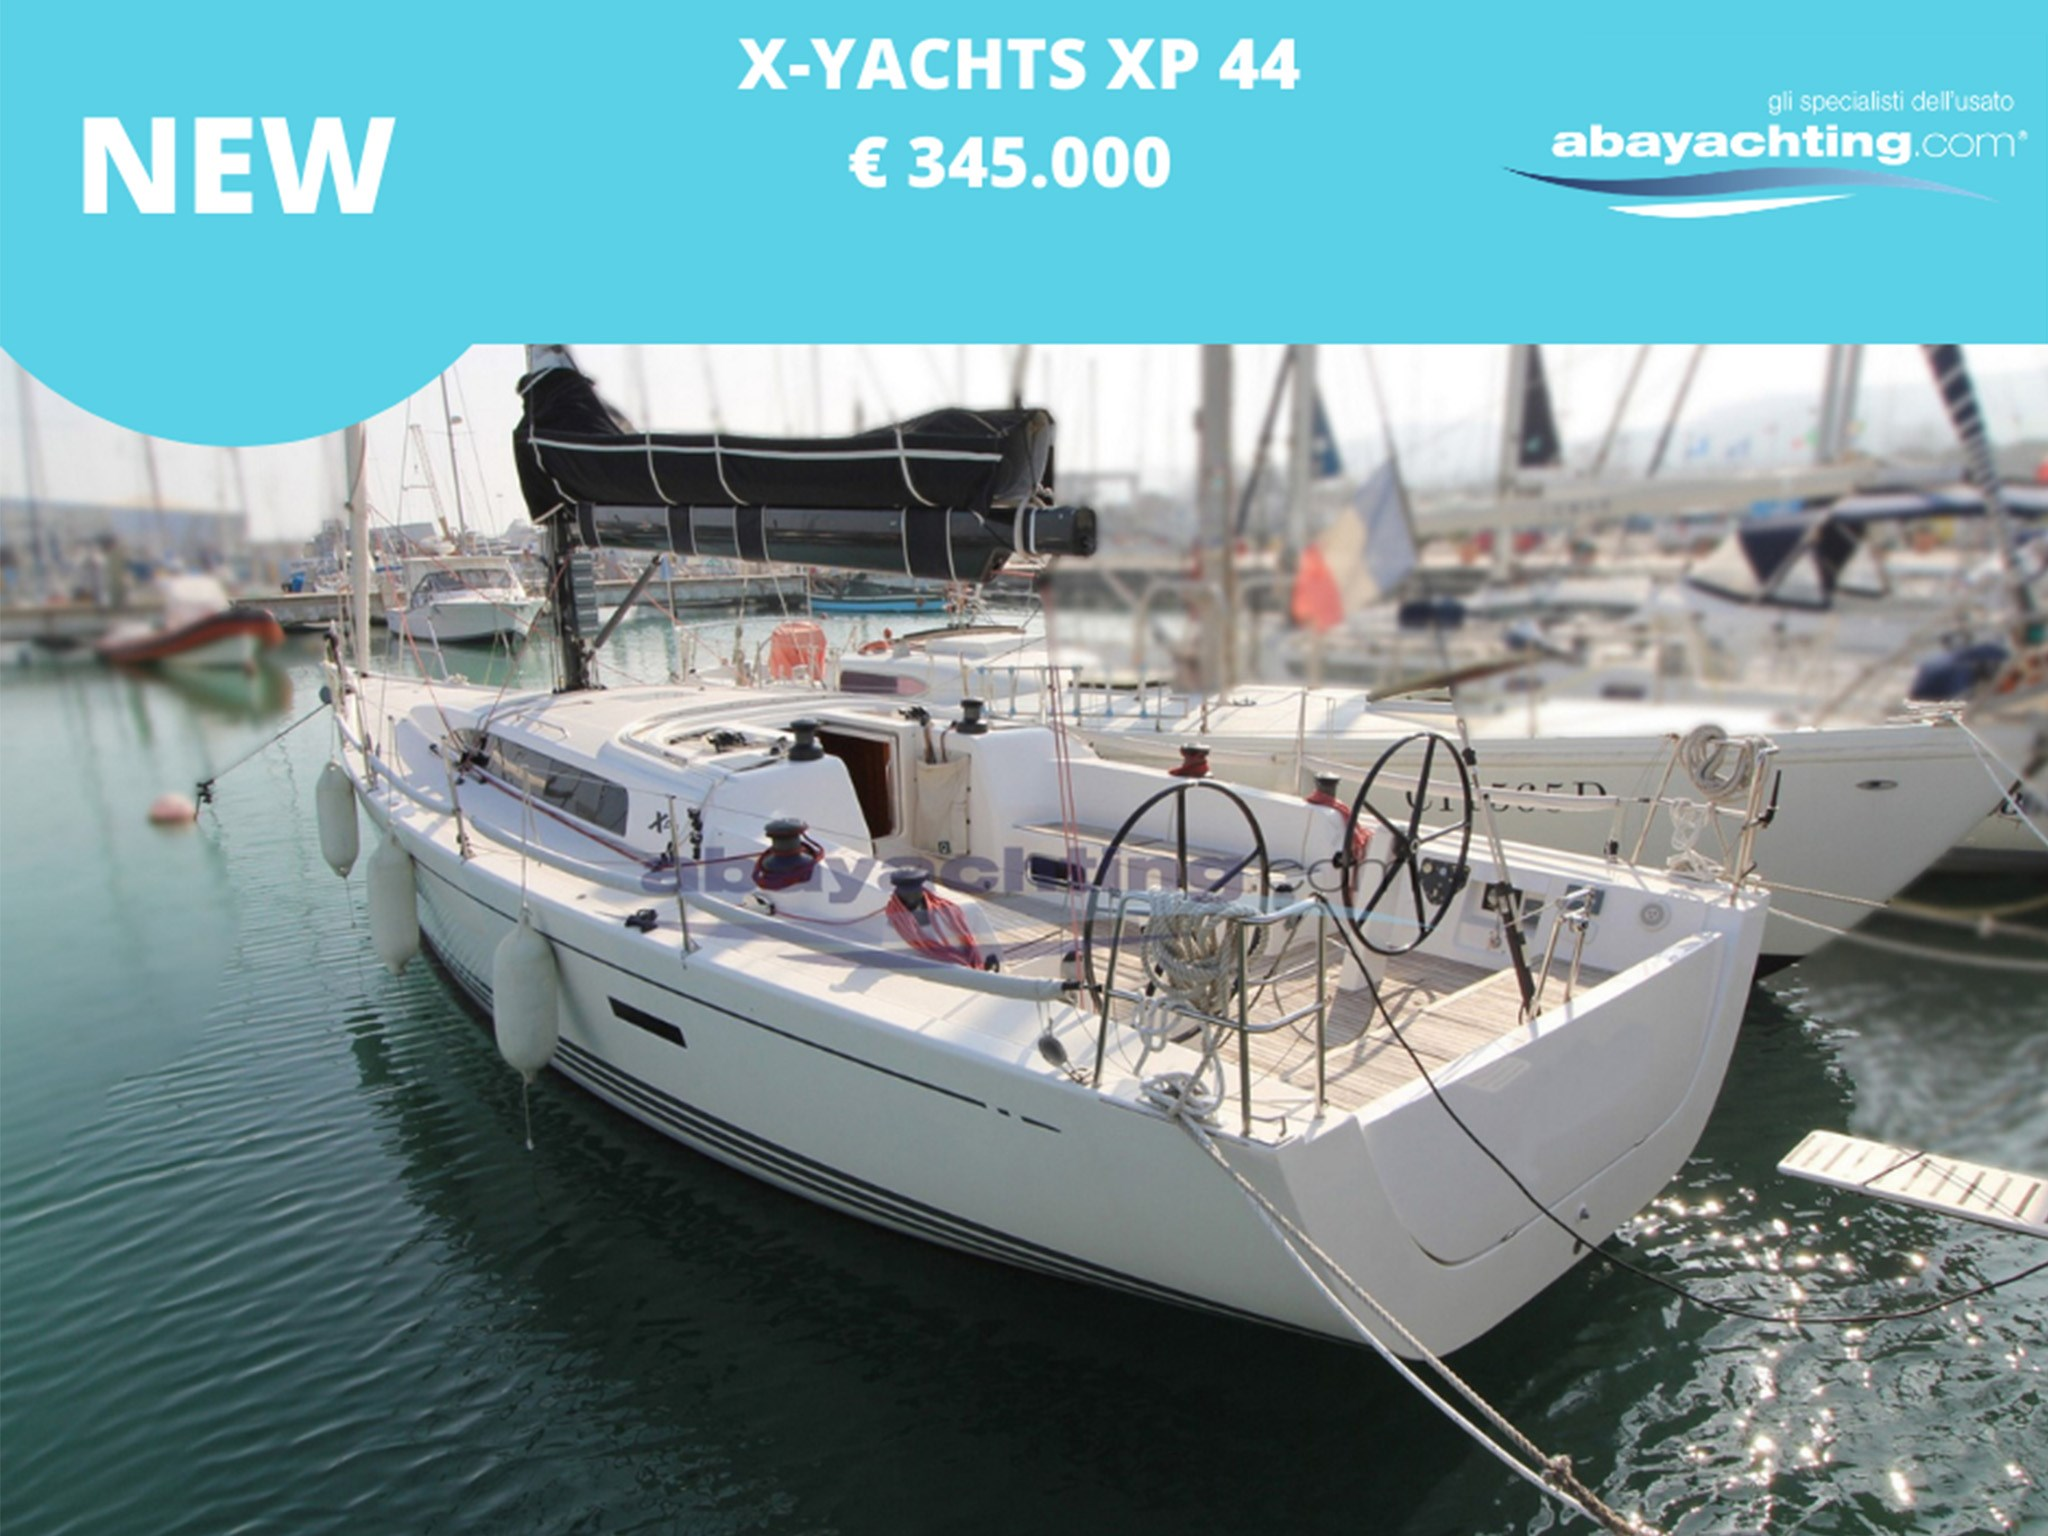 New arrival XP 44